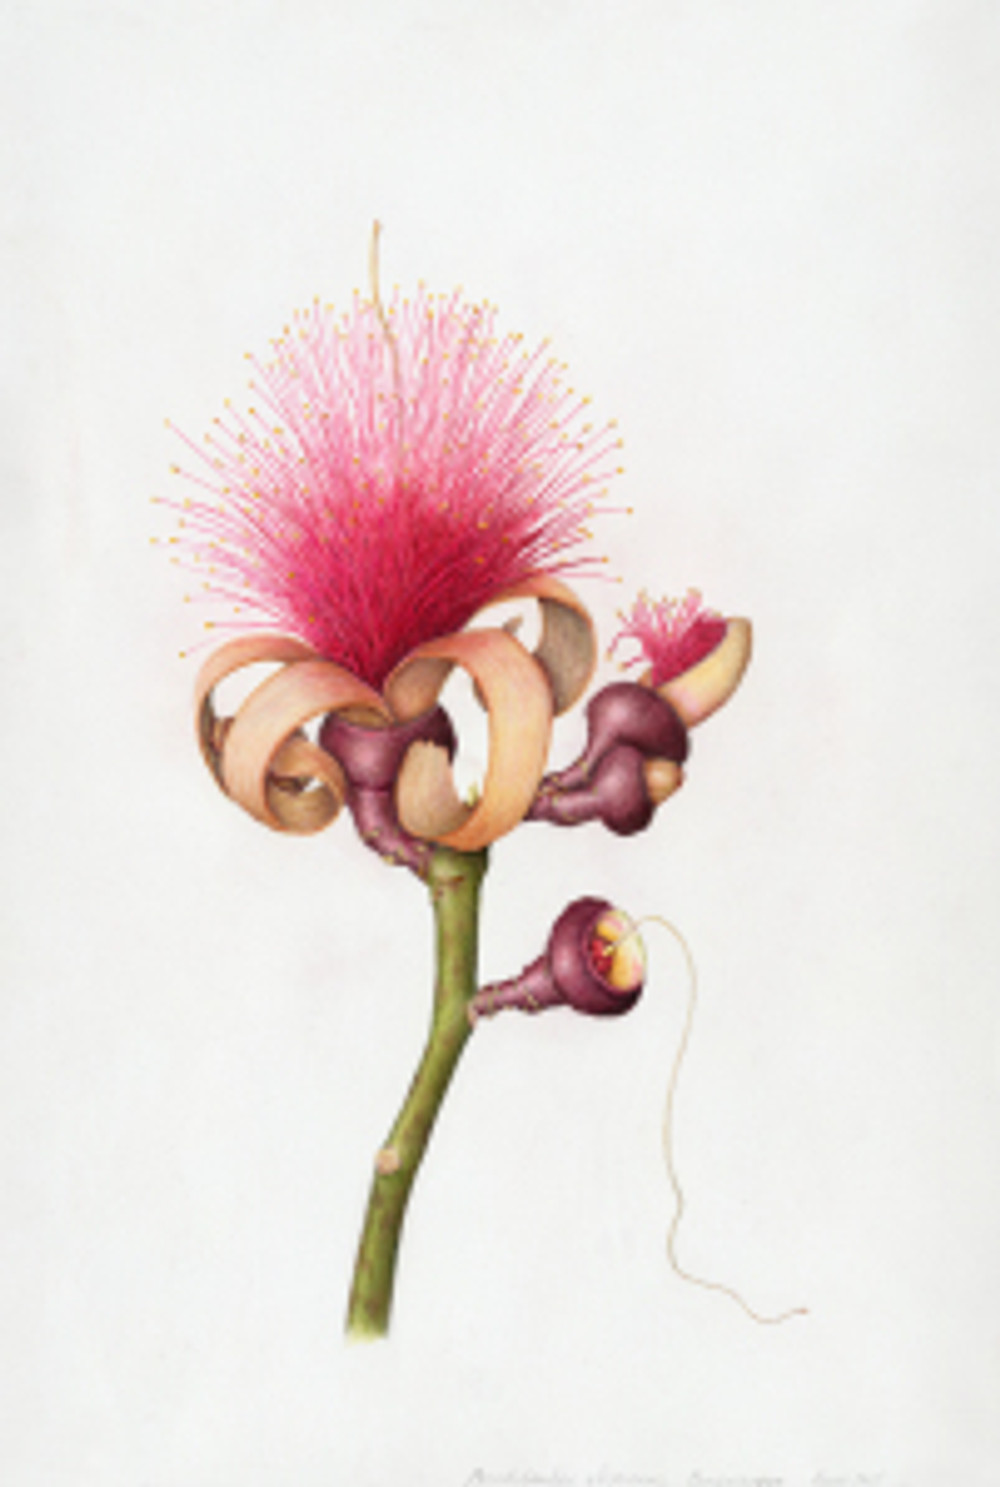 Melanie Campbell-Carter, colored pencil, Pseudobombax ellipticum, shaving brush tree, © 2015, all rights reserved.